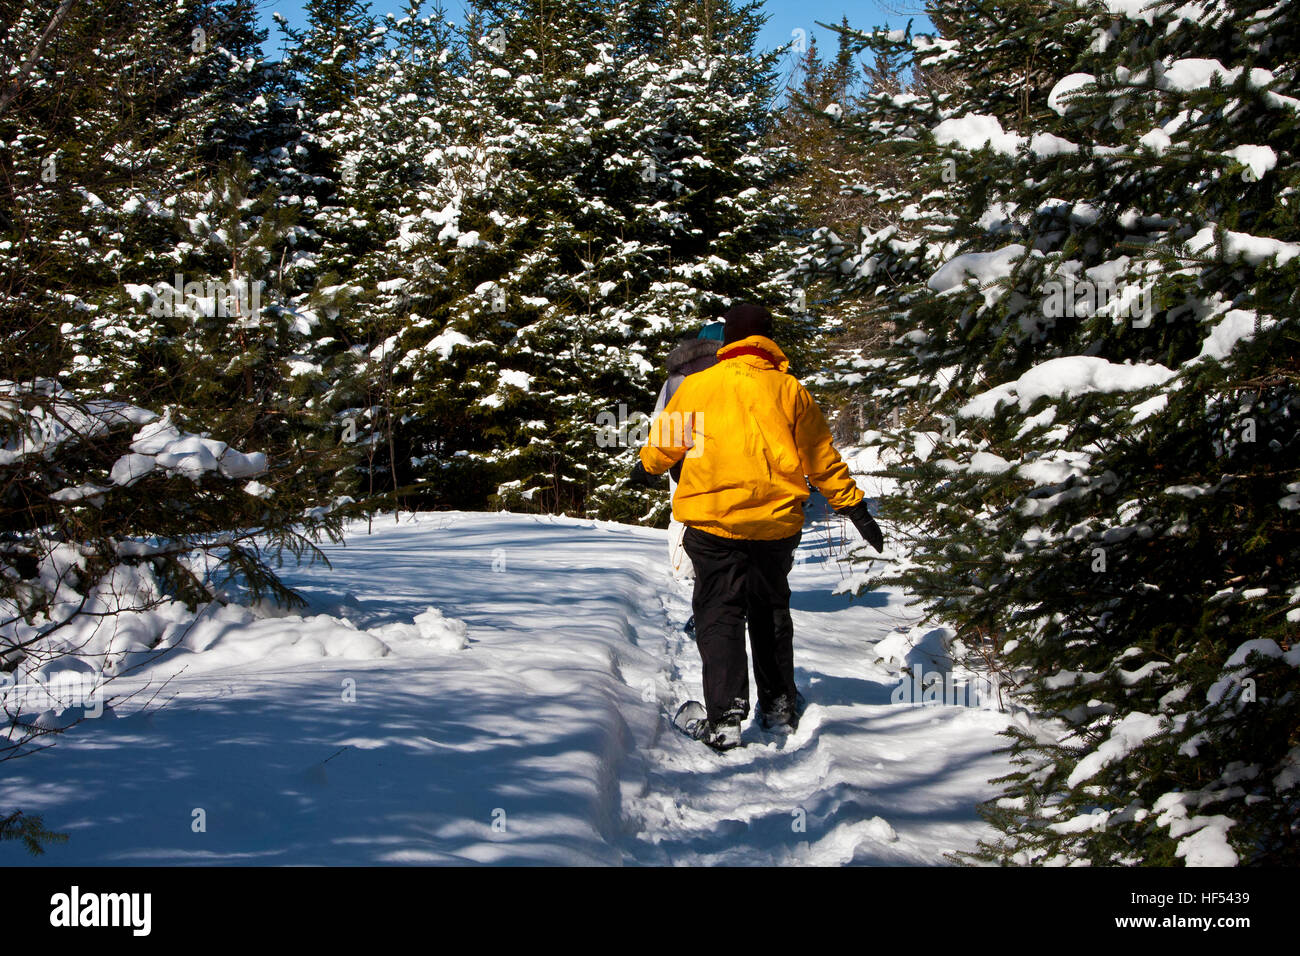 The Appalachian Mountain Club Highland Center at Crawford Notch, New Hampshire, USA, snow shoeing a mountain path - Stock Image